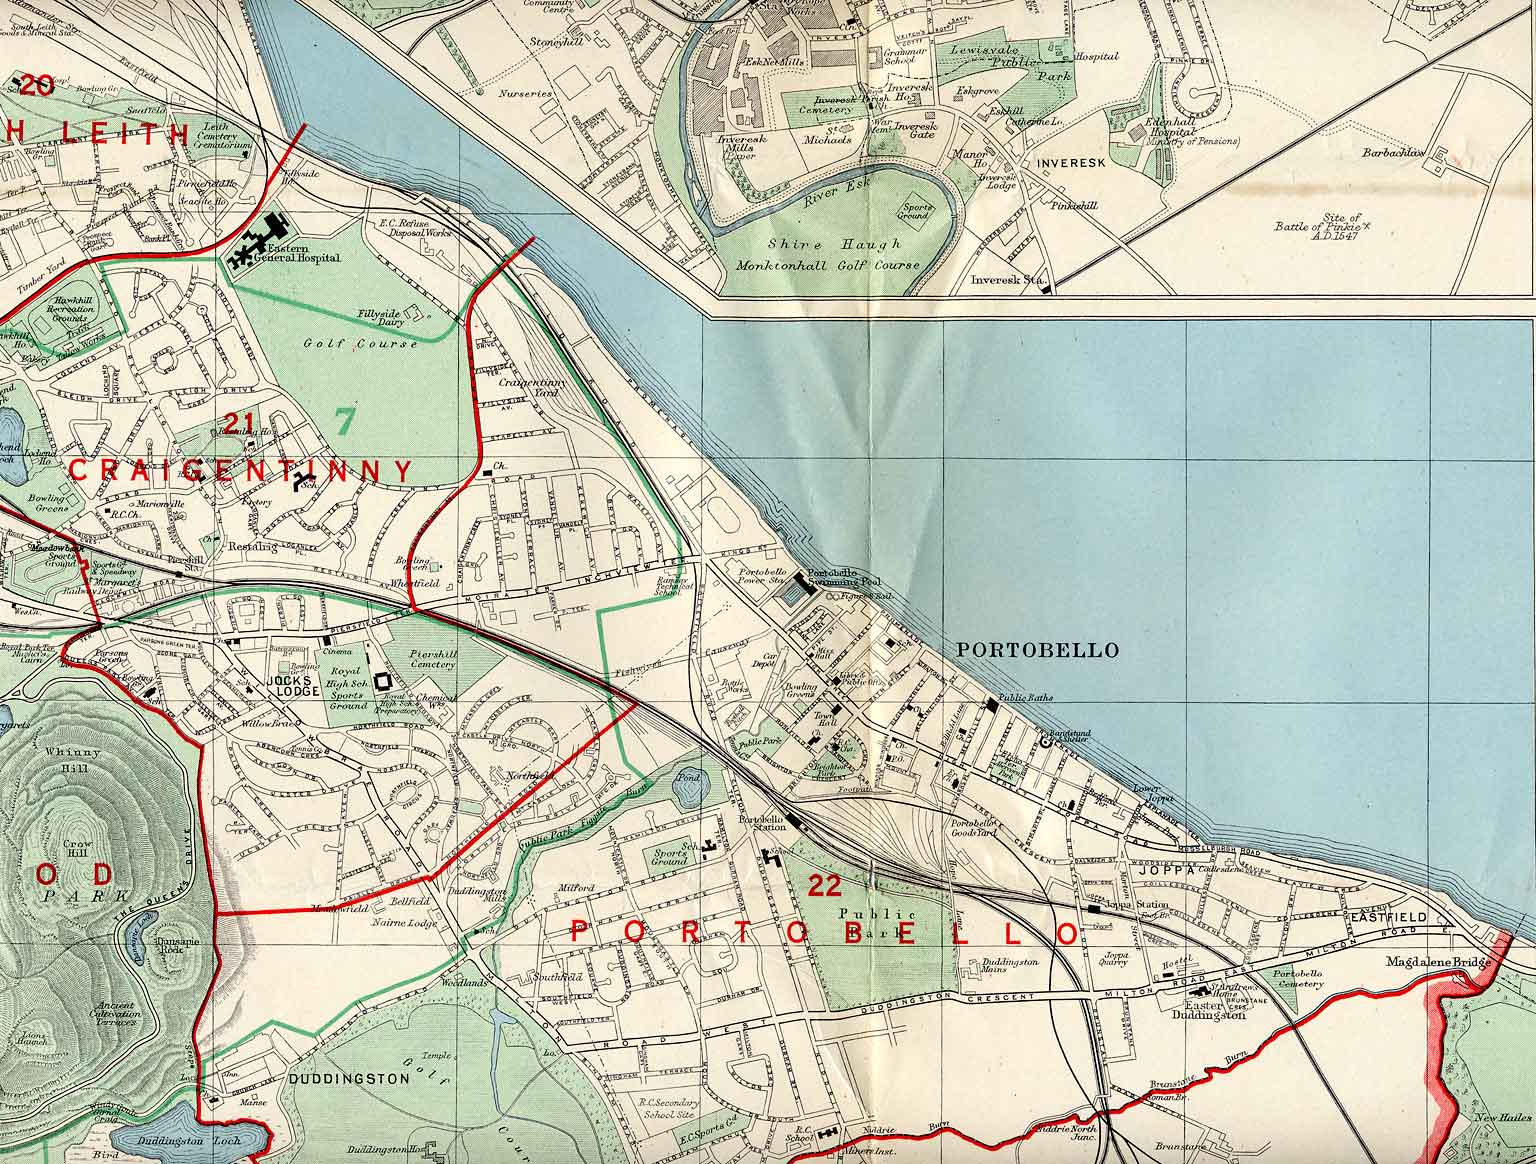 Edinburgh and Leith map, 1955  -  Portobello,  Edinburgh